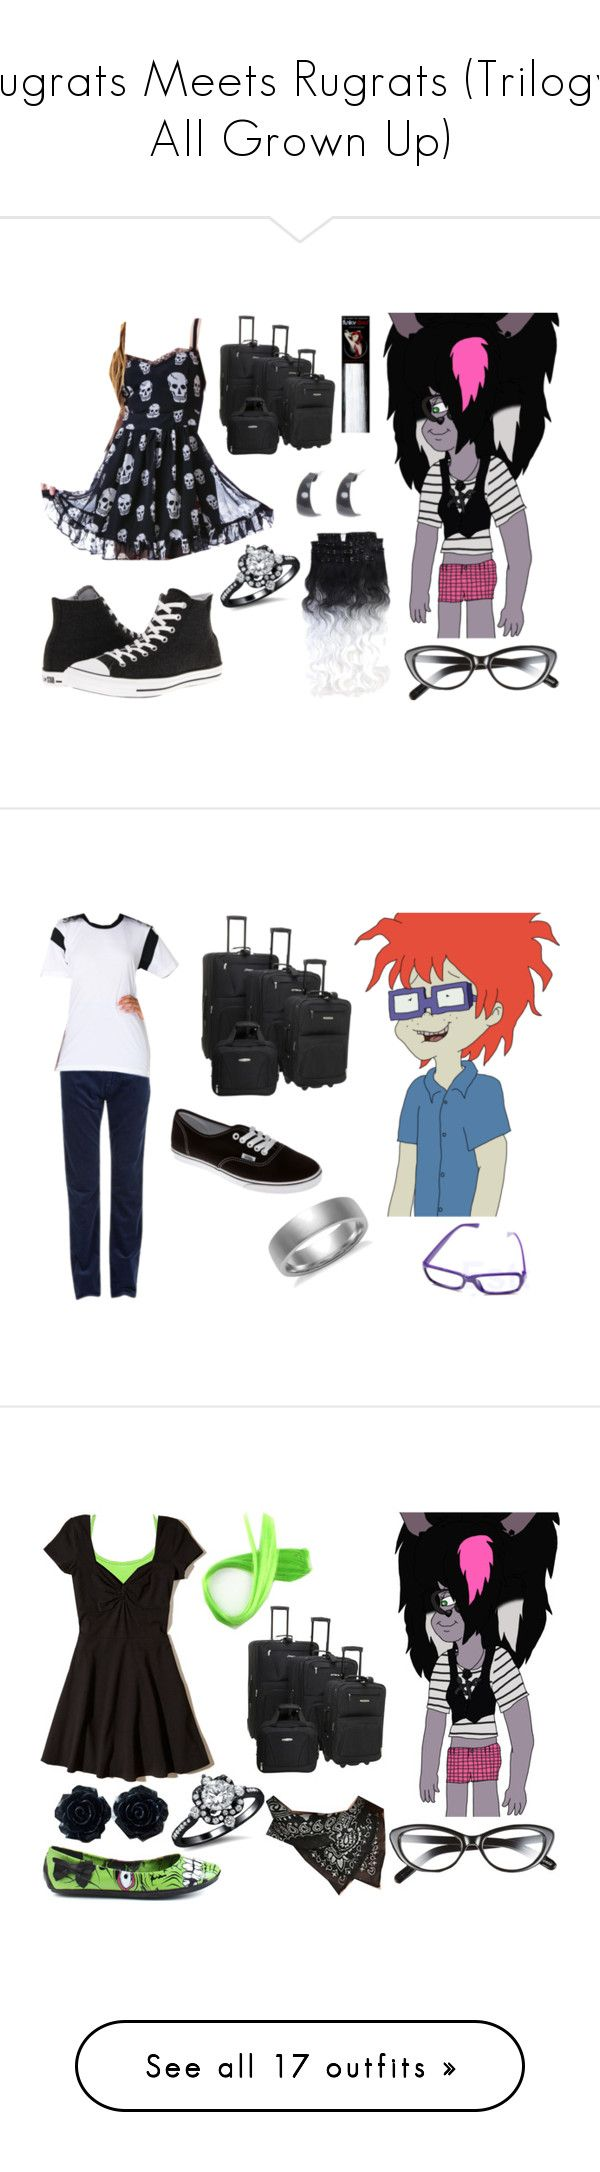 """Rugrats Meets Rugrats (Trilogy; All Grown Up)"" by brainyxbat ❤ liked on Polyvore featuring Elizabeth and James, Tripp, Converse, claire's, Rockland Luggage, Blue Nile, GANT, American Apparel, Vans and men's fashion"